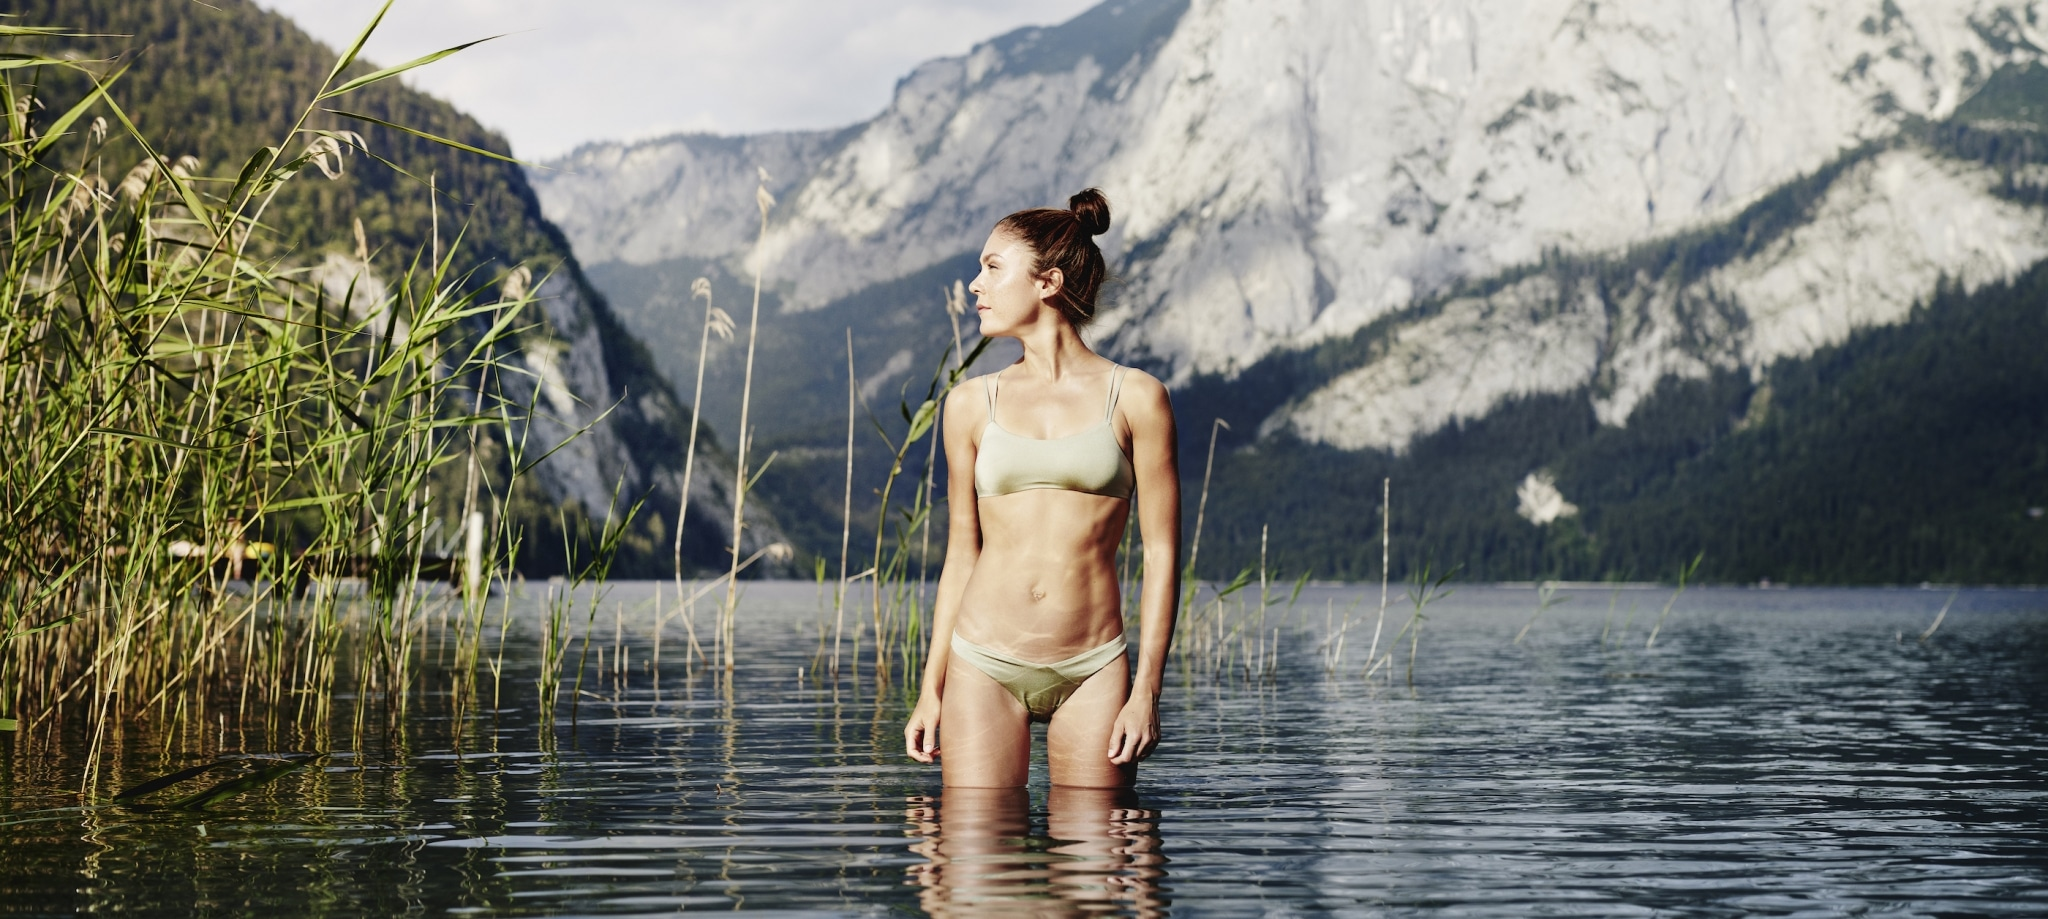 Young, fit woman wearing beige bikini going for a swim in lake Altaussee at Medical Health Resort VIVAMAYR Altaussee